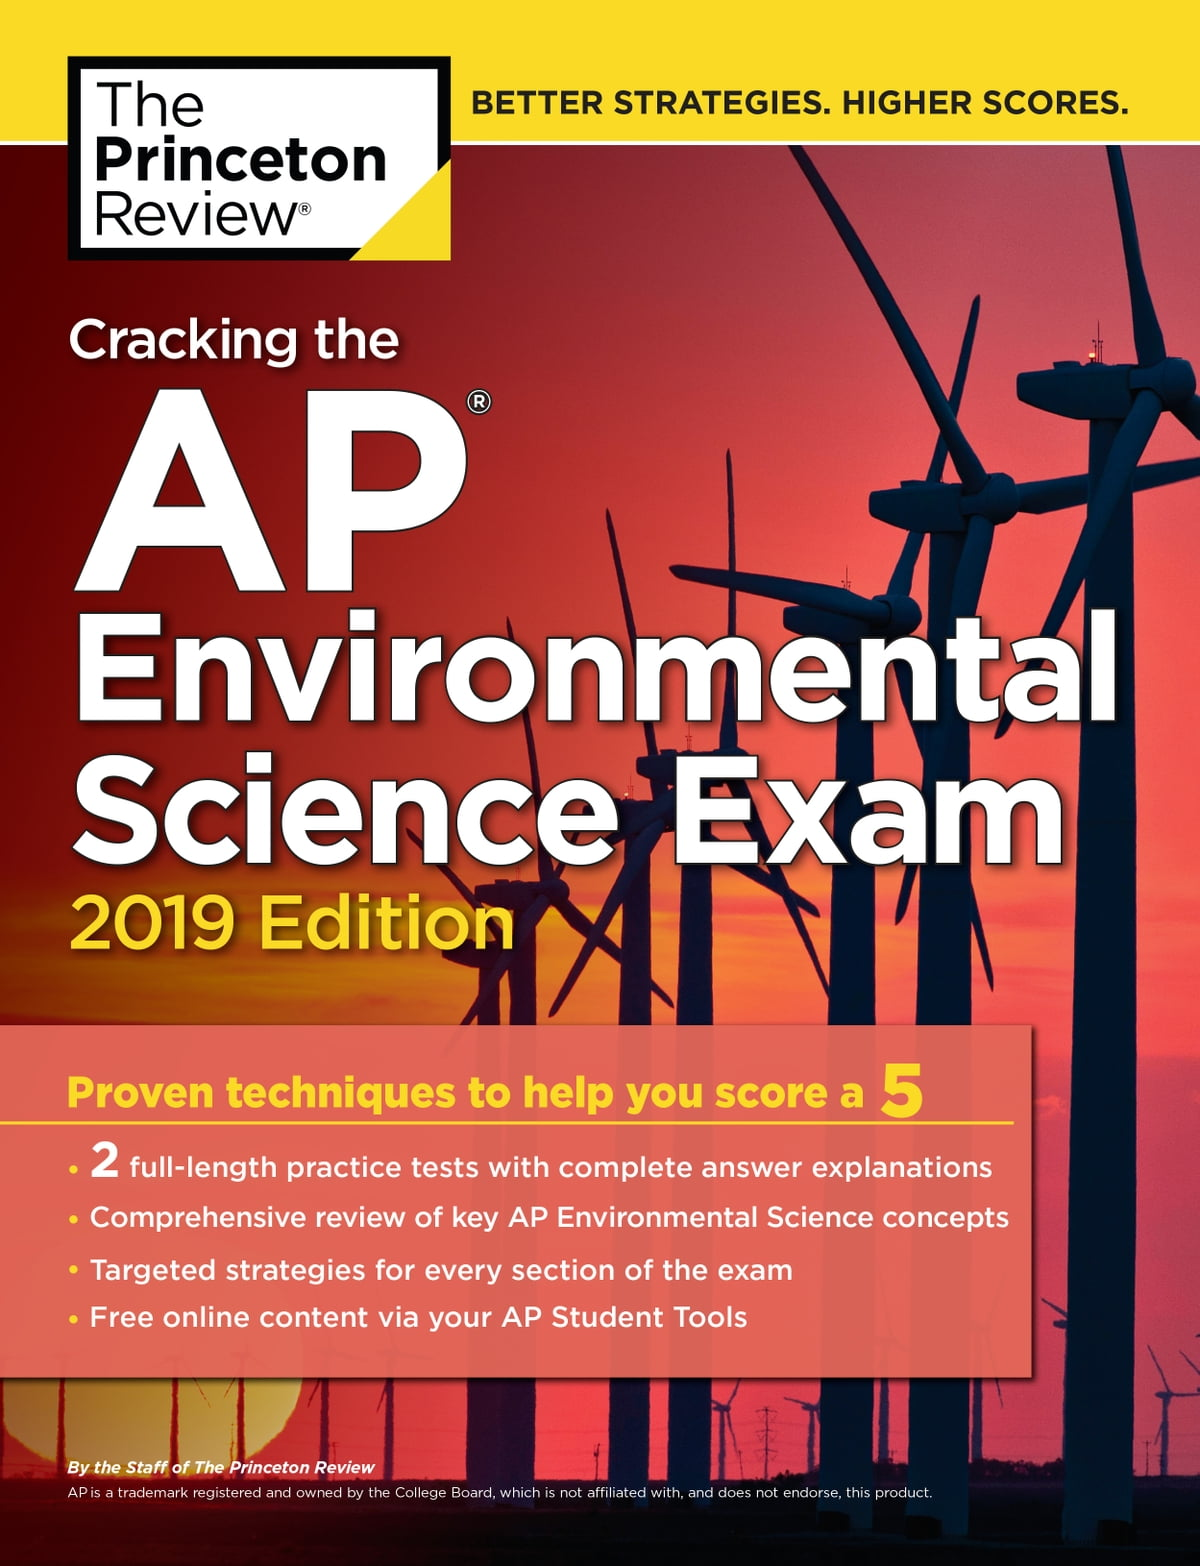 Cracking the AP Environmental Science Exam, 2019 Edition eBook by Princeton  Review - 9781524758387 | Rakuten Kobo